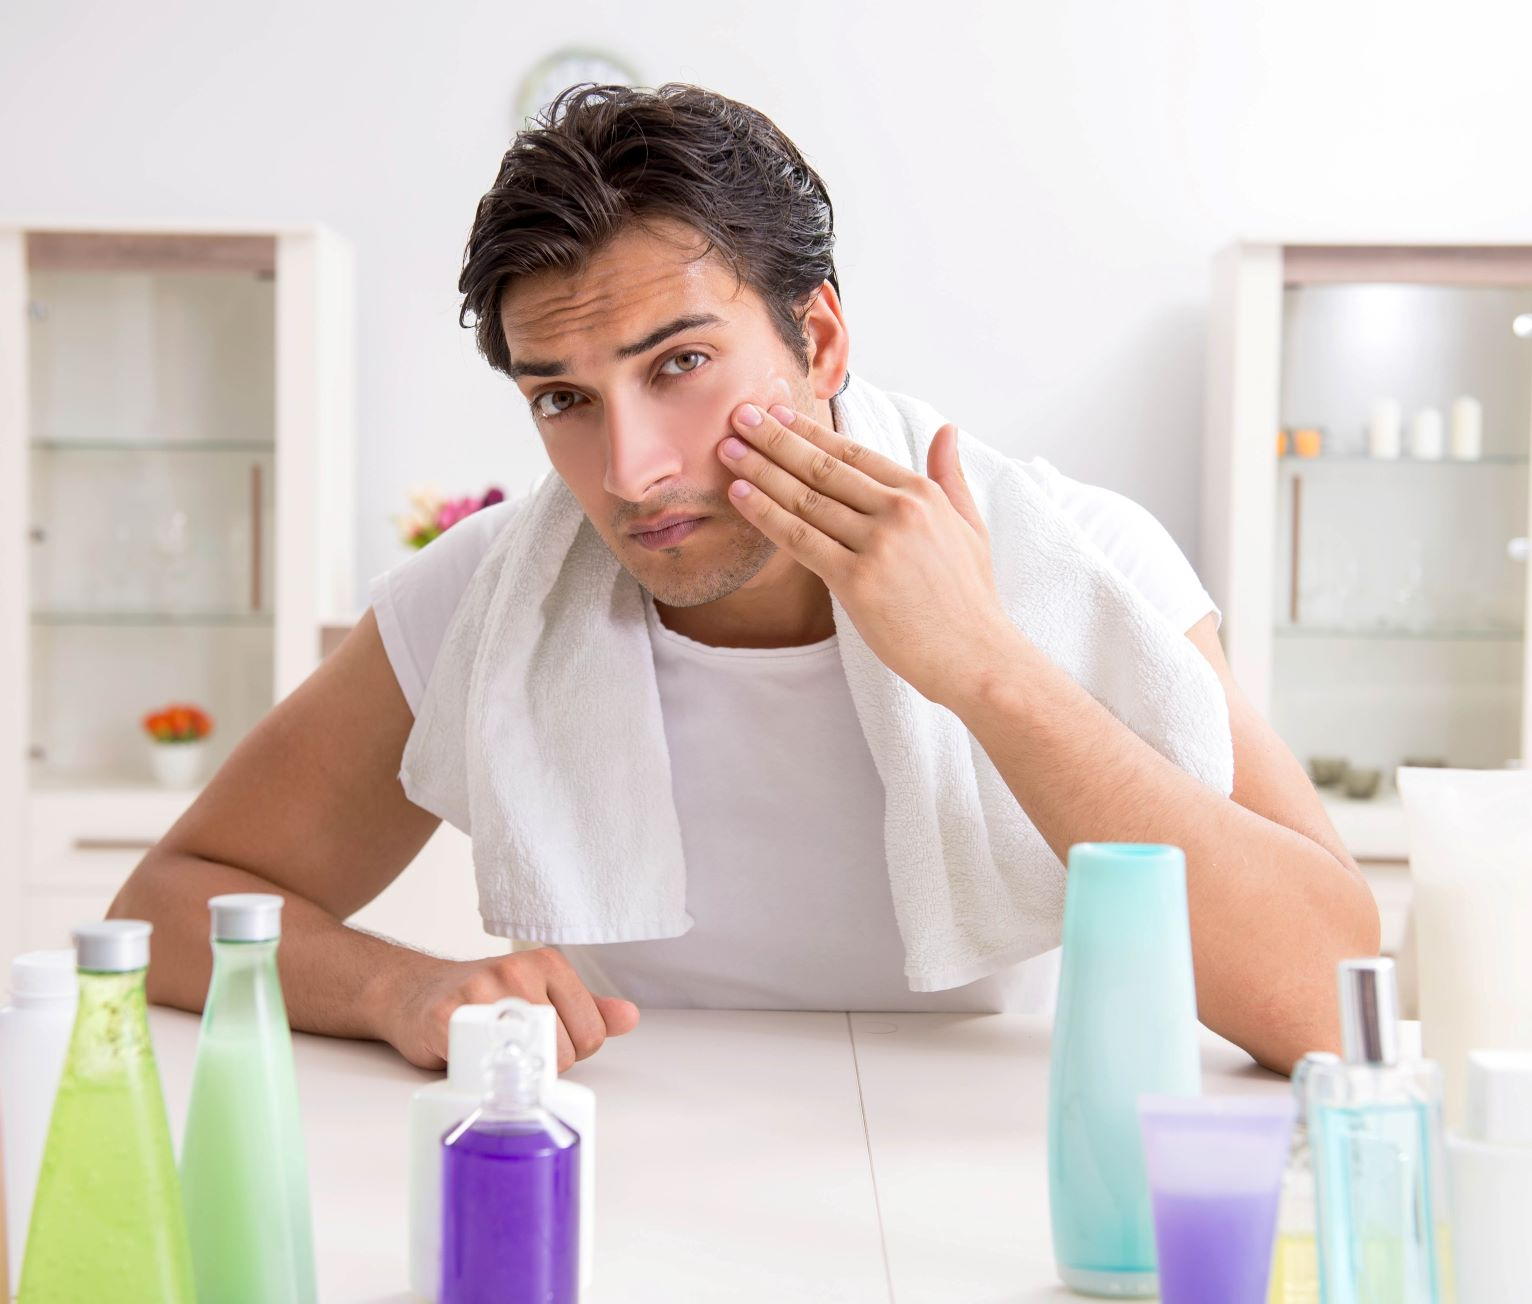 Man applying moisturizer to his face as part of his self-care routine